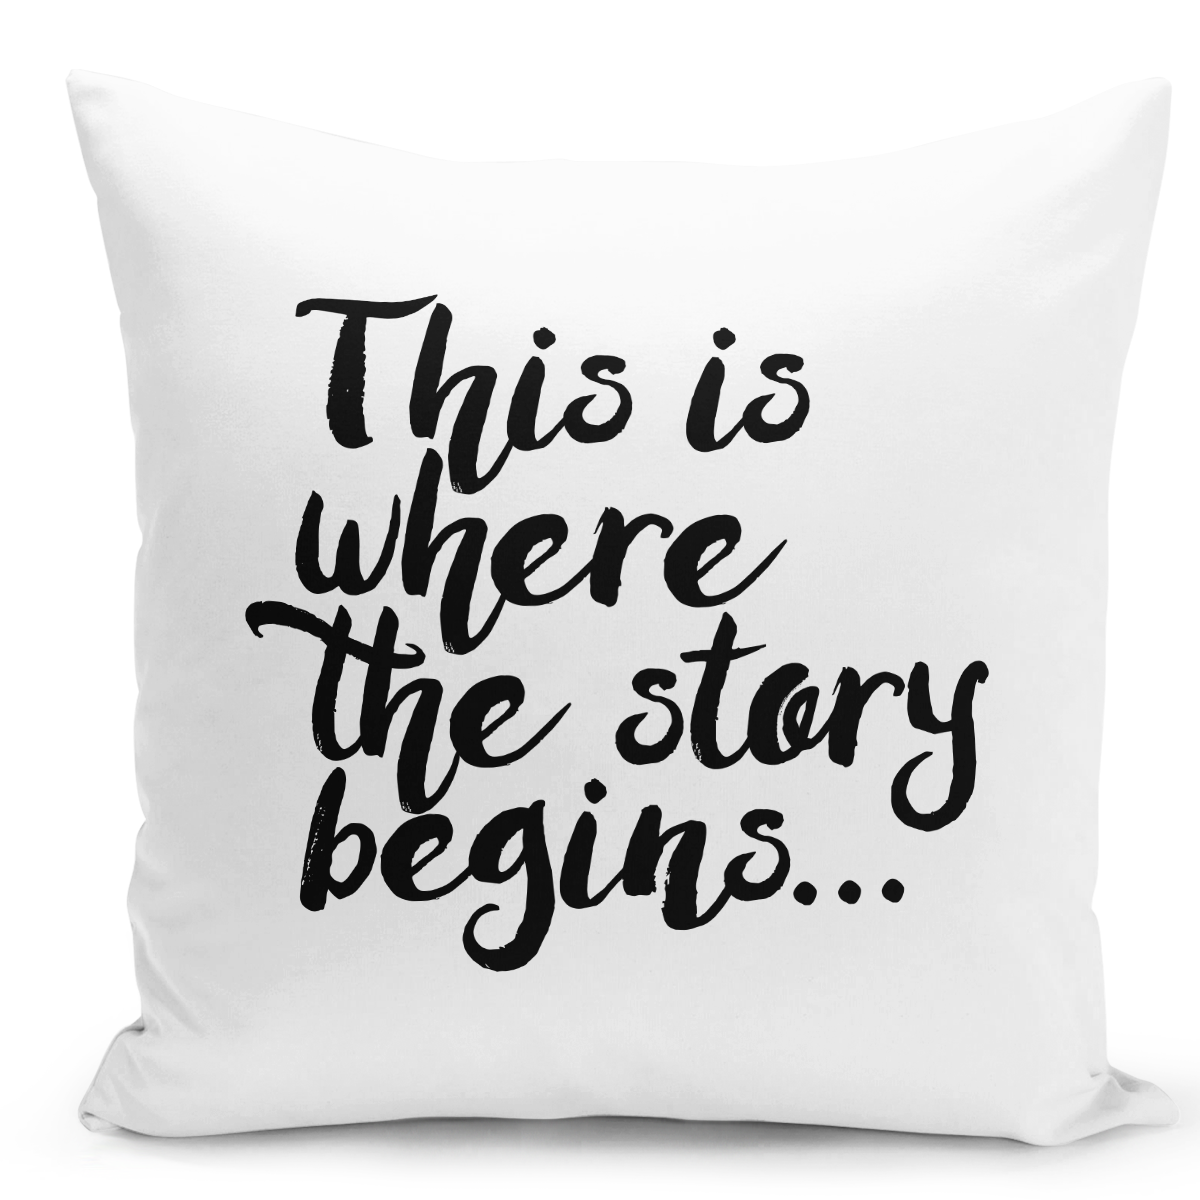 White-Throw-Pillow-This-Is-Where-The-Story-Begins---Durable-White-16-x-16-inch-Square-Home-Office-Decor-Accent-Pillow-